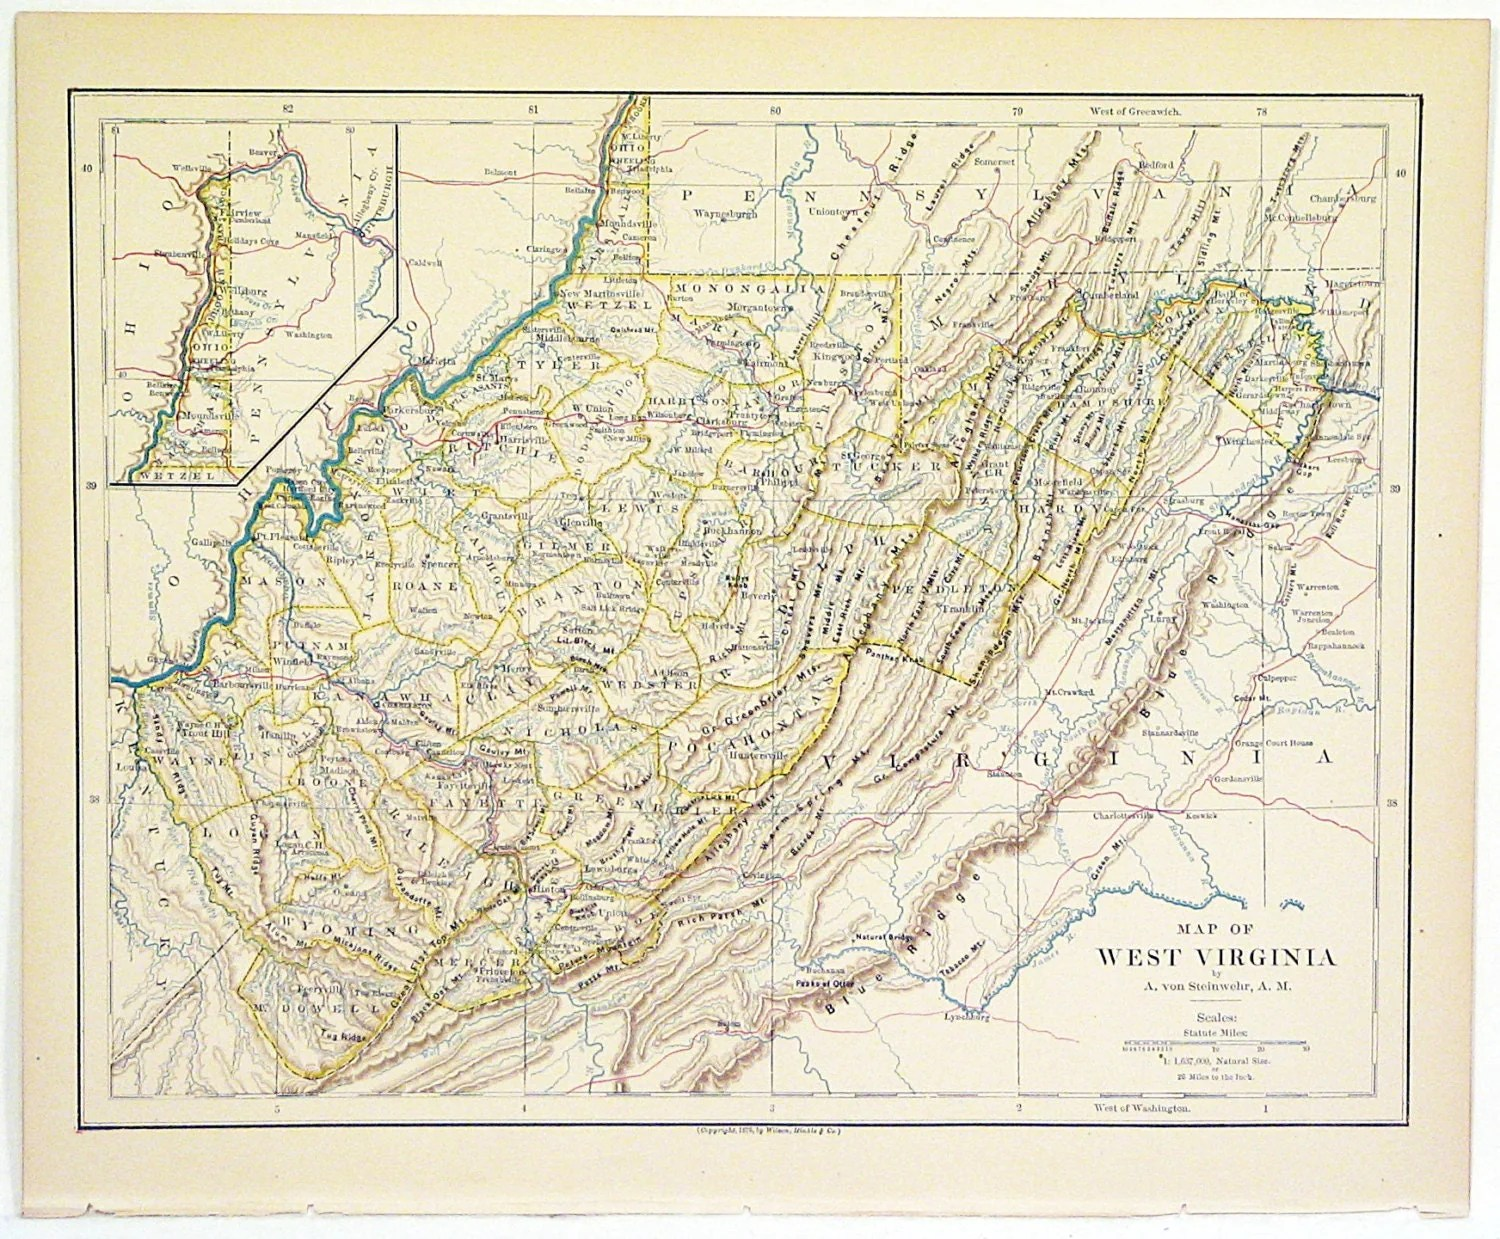 Original Color Atlas Map Of The State Of West Virginia By